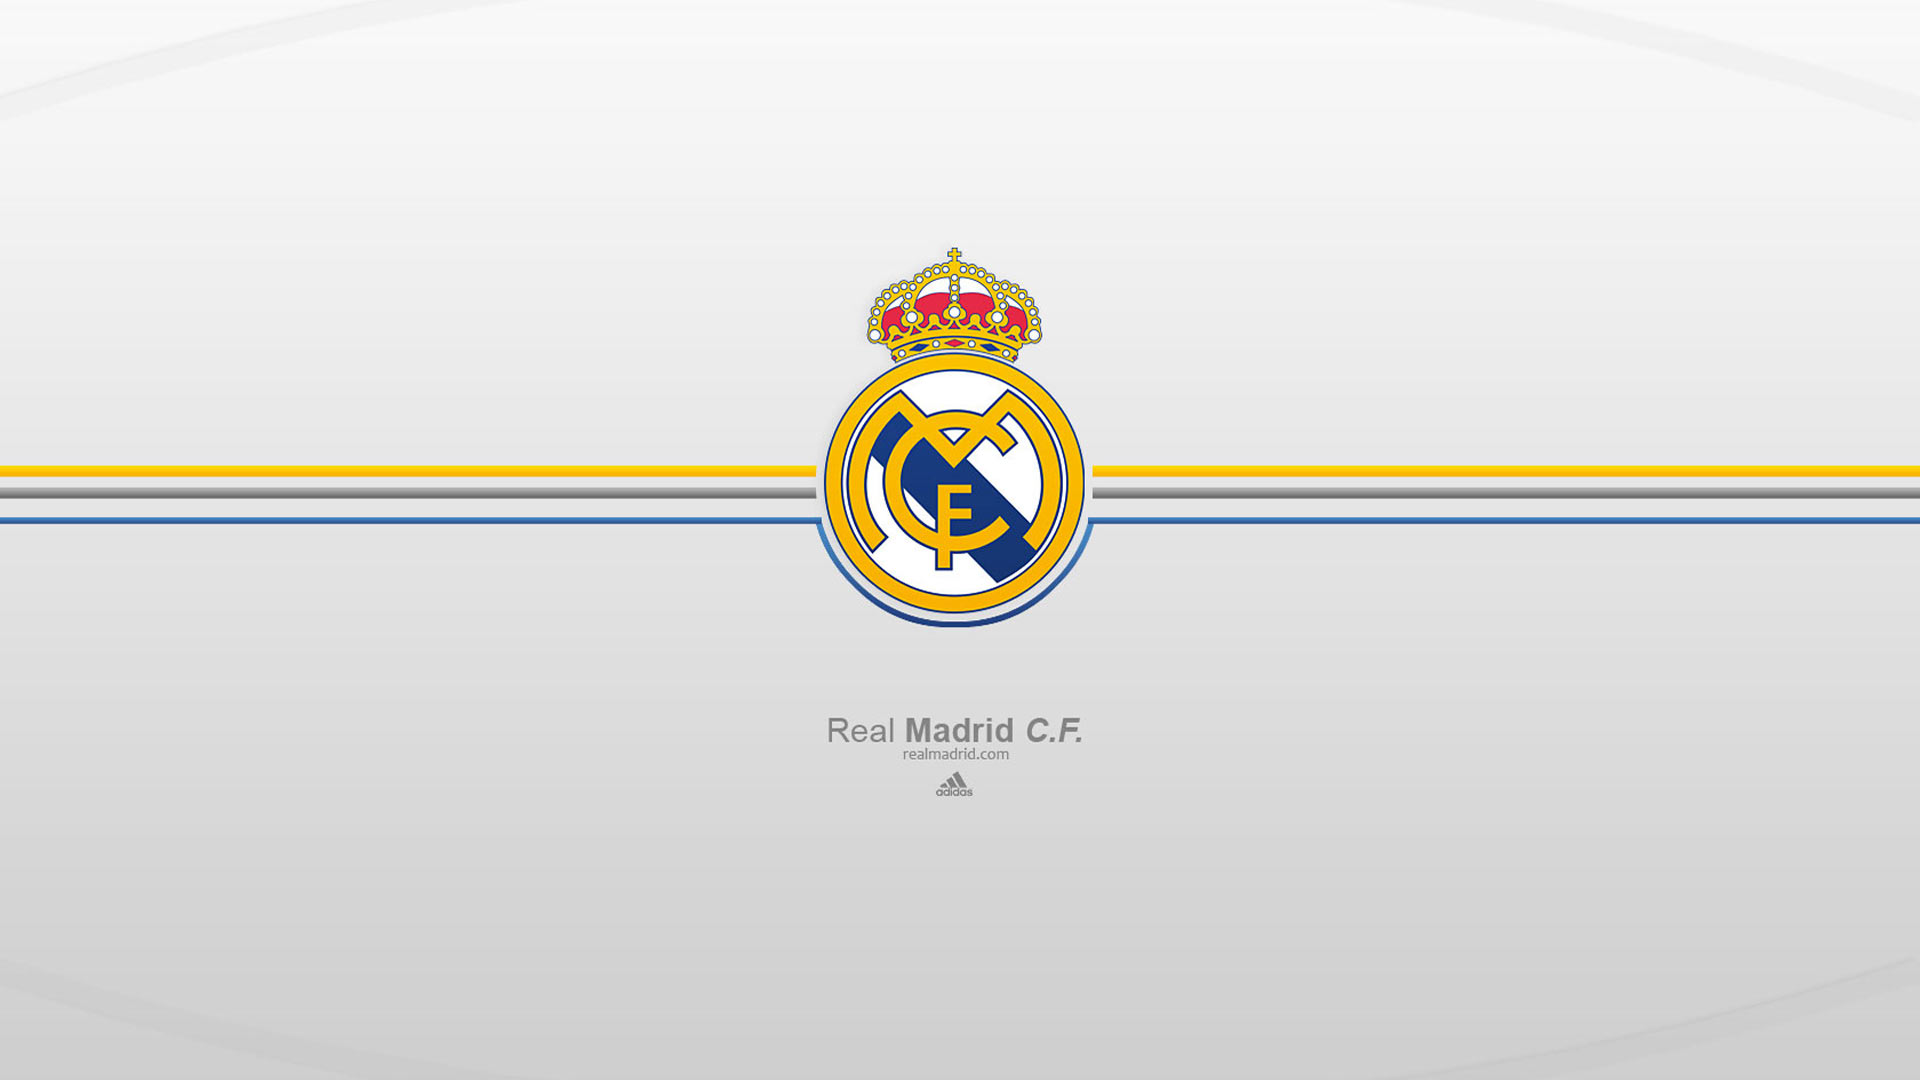 Real Madrid Wallpaper Android Phones